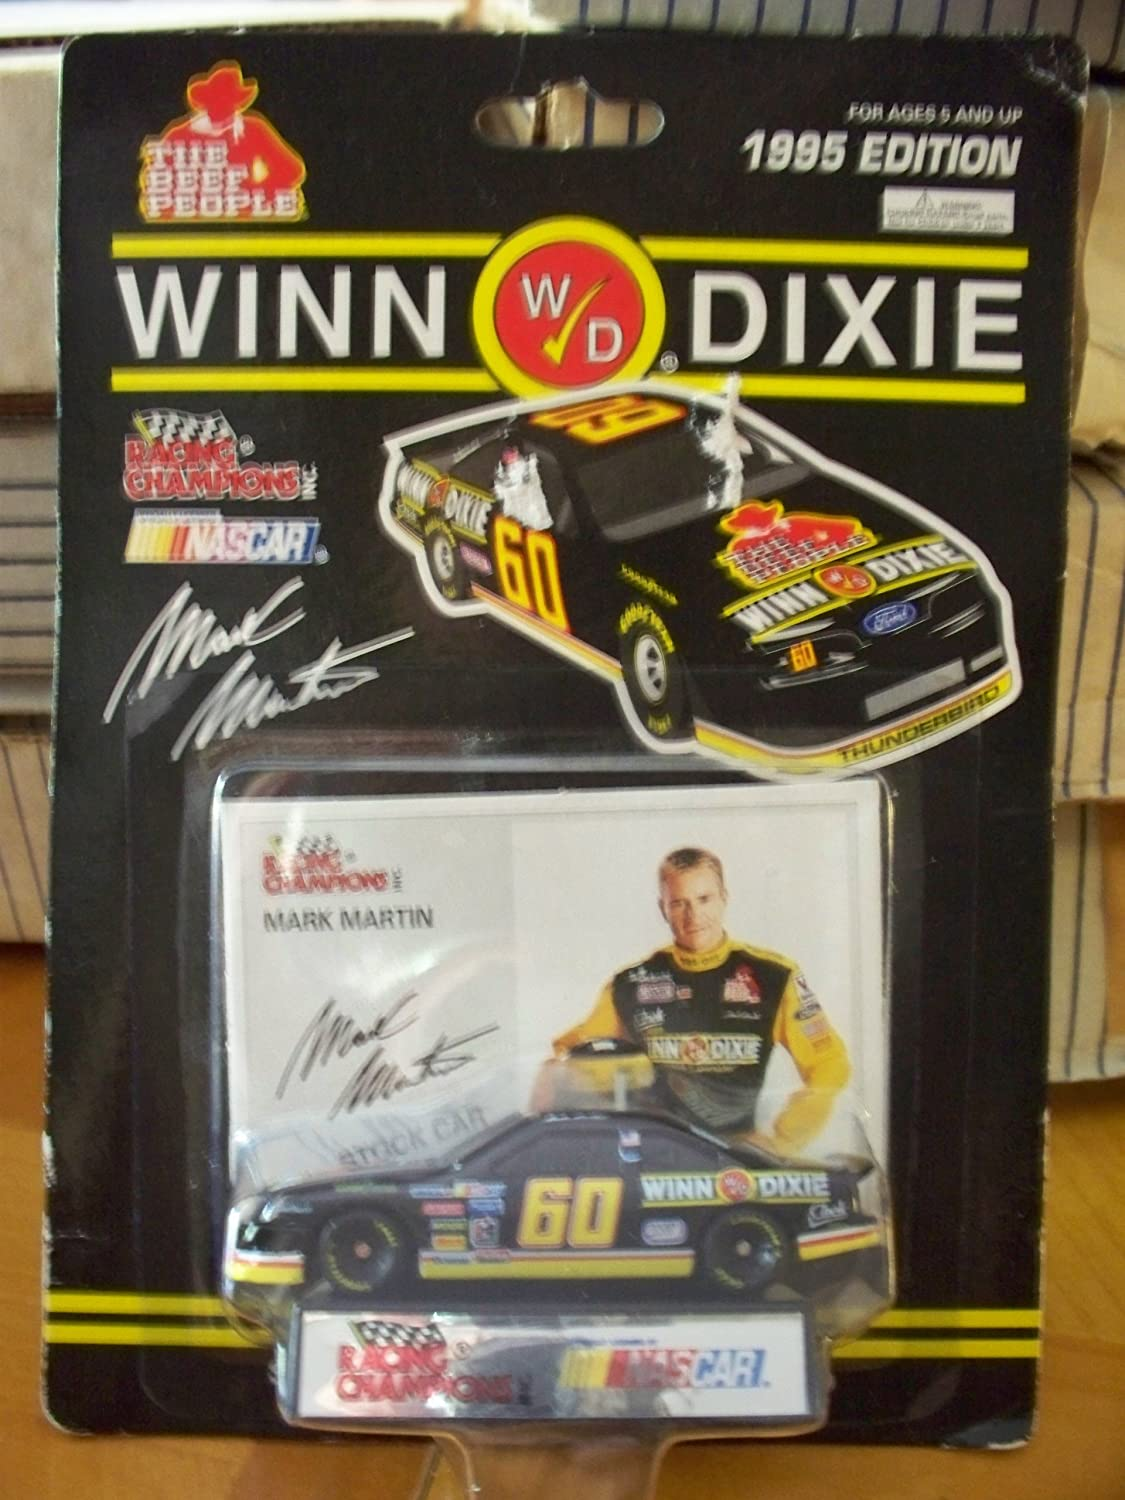 Review of winn dixie free appliances - Amazon Com Winn Dixie Racing Champions Mark Martin Stock Car Toys Games